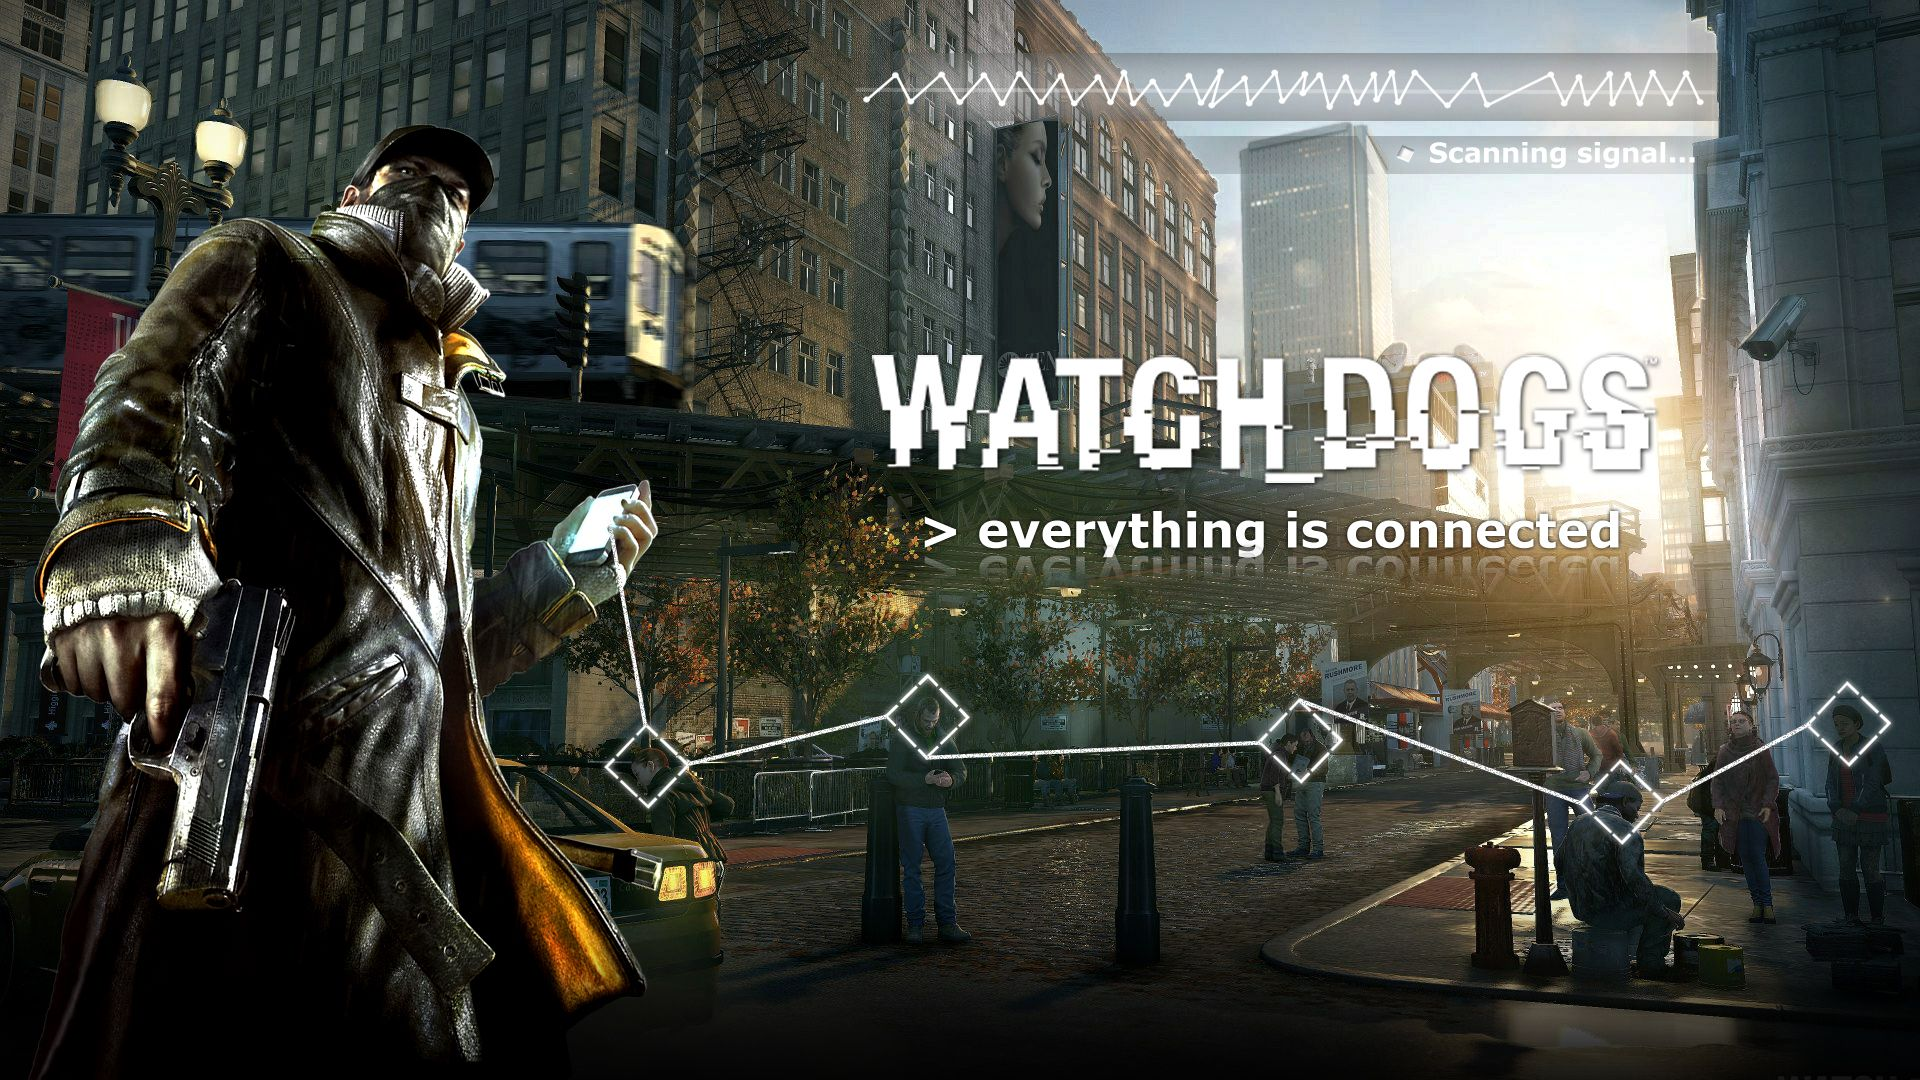 Second Hacker Watch Dogs